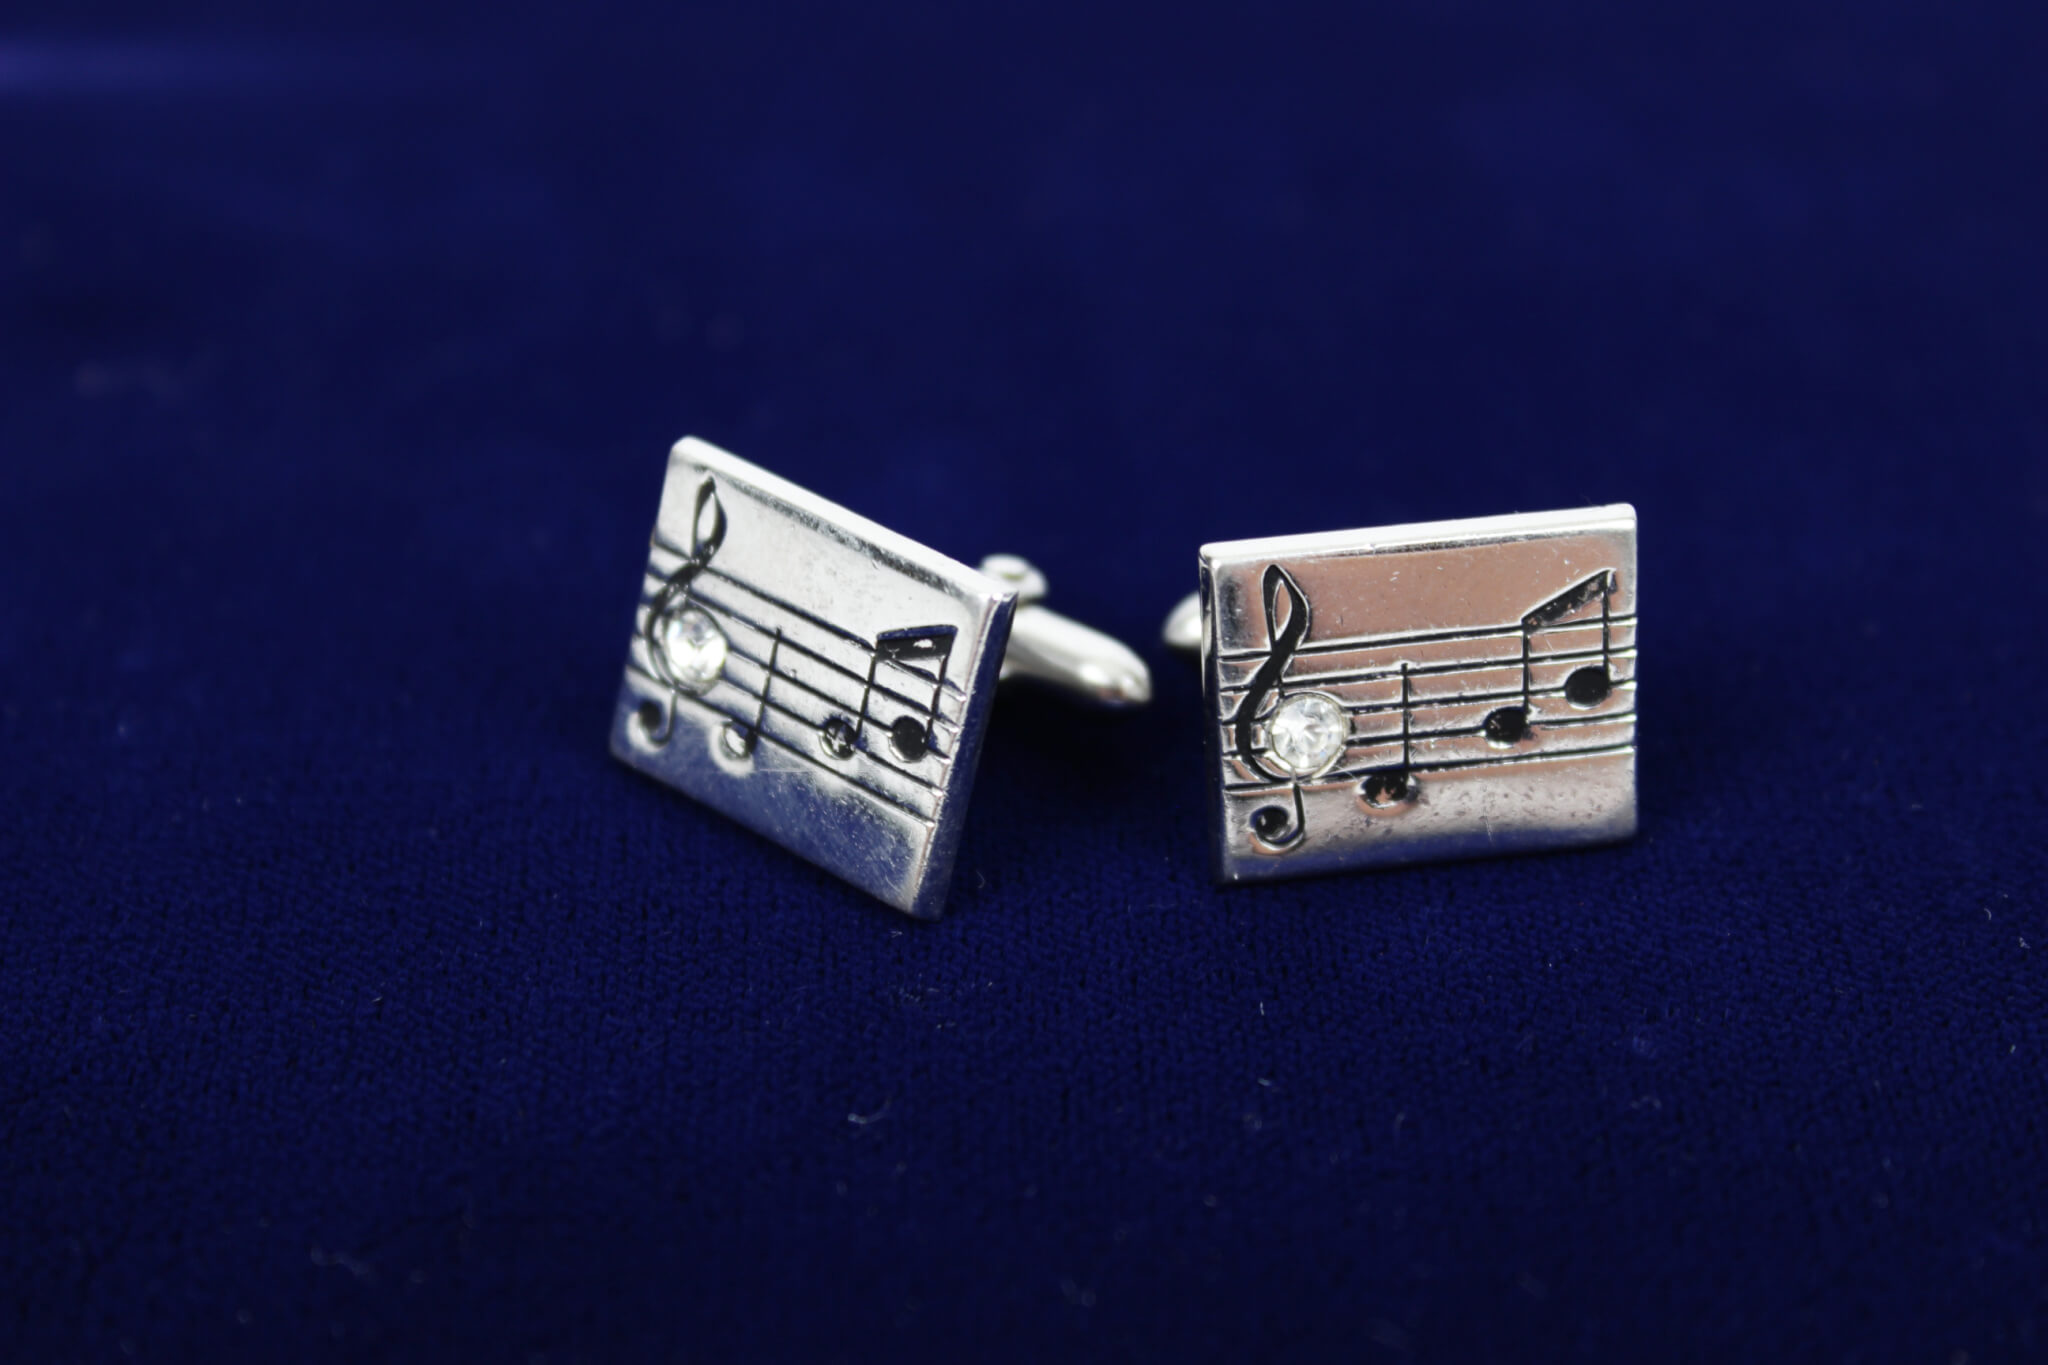 Elvis Presley Swank Cufflinks Given to Bill Layne Director of International Hotel, Las Vegas